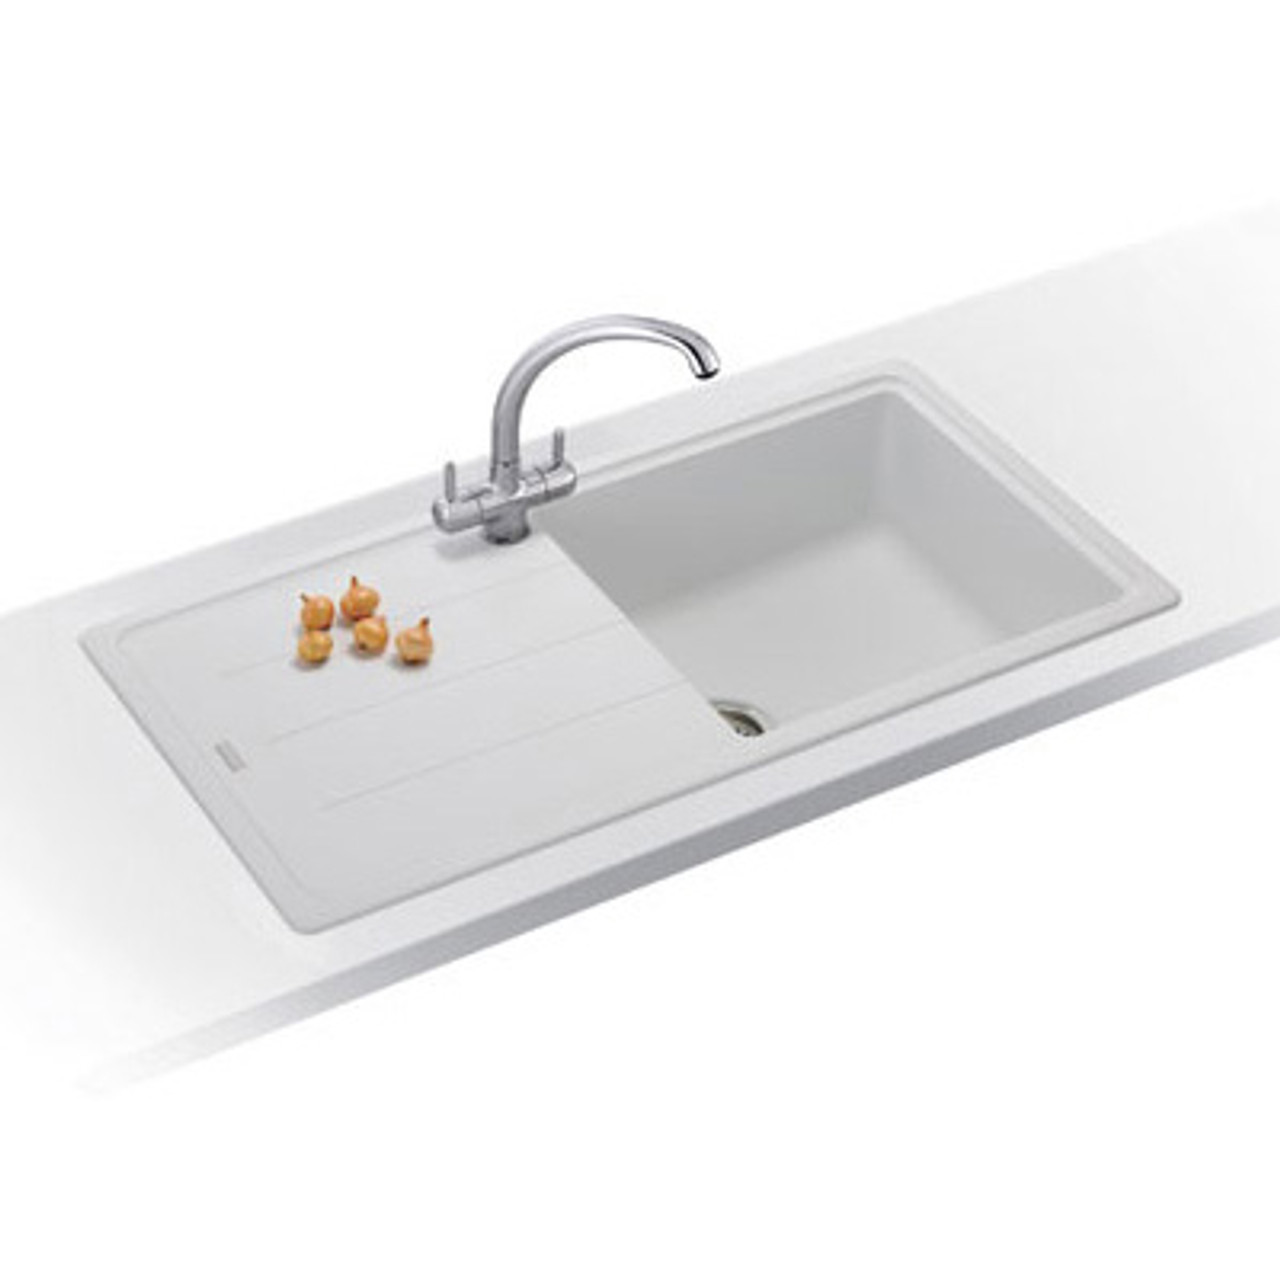 bathroom cabinet sinks franke basis bfg611 970 fragranite polar white kitchen 11147